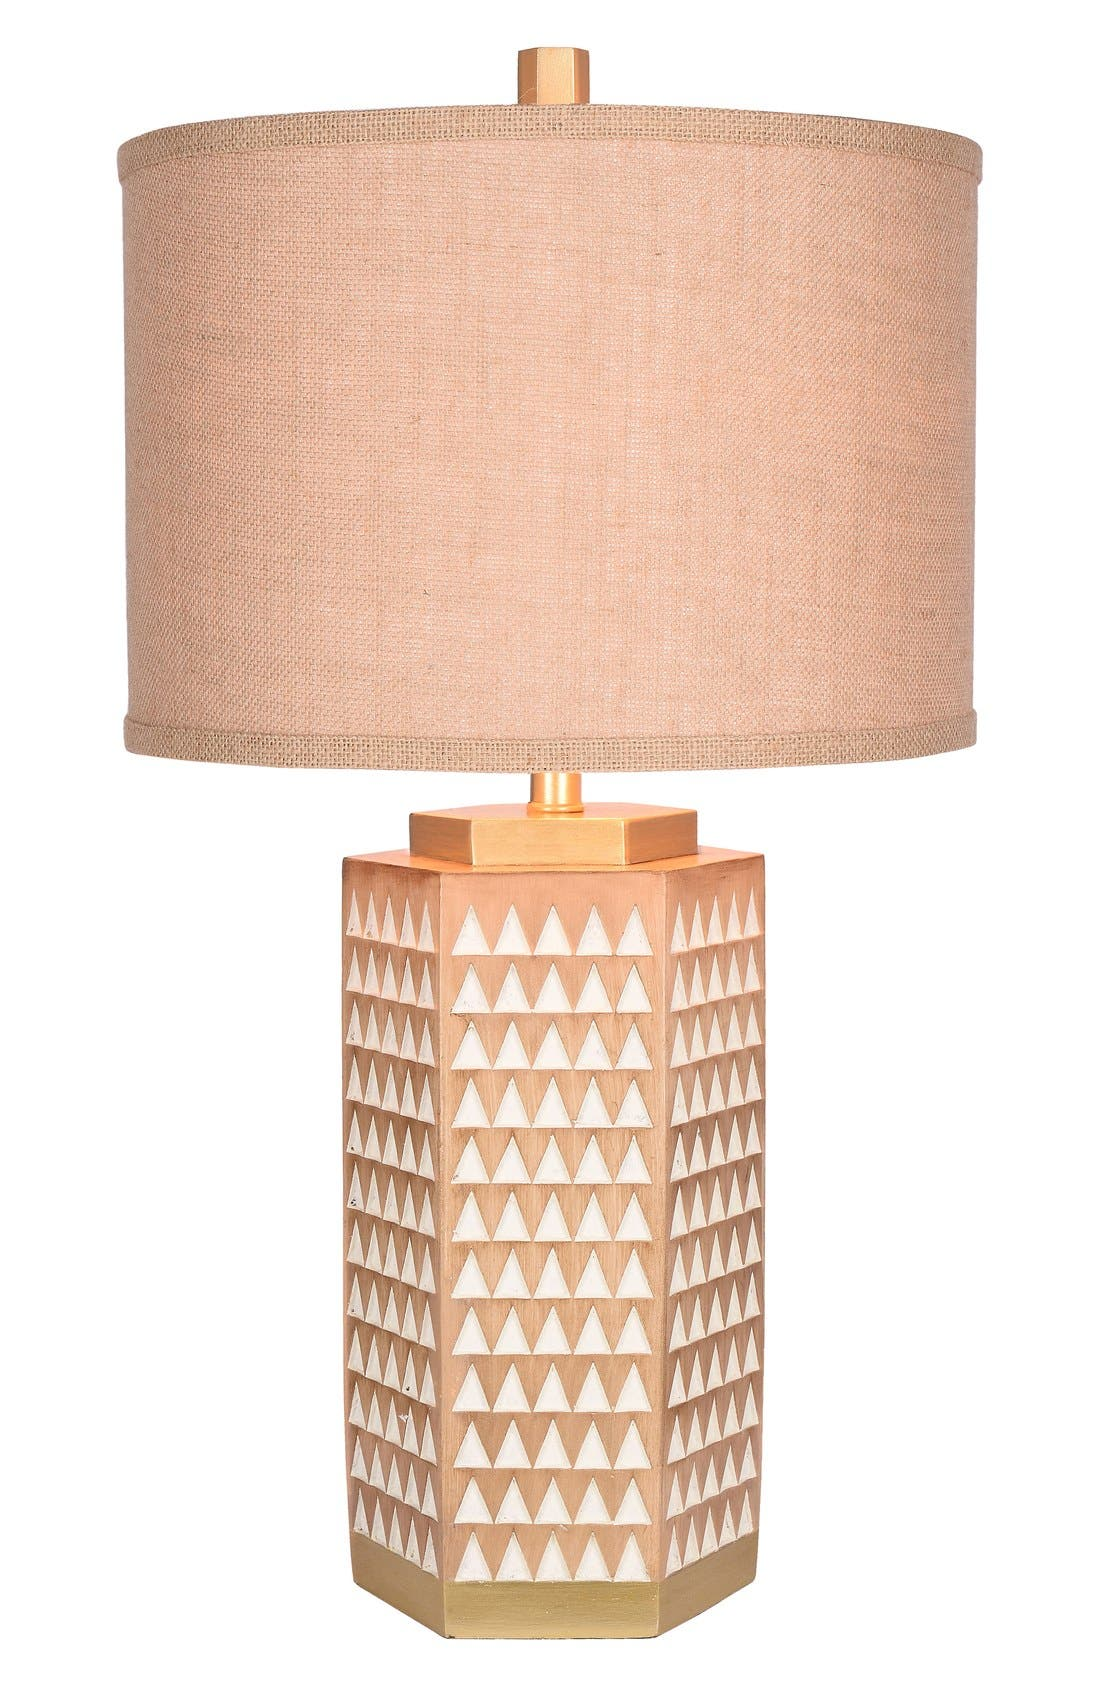 JAlexander Kinsley Faux Wood Table Lamp,                             Main thumbnail 1, color,                             250